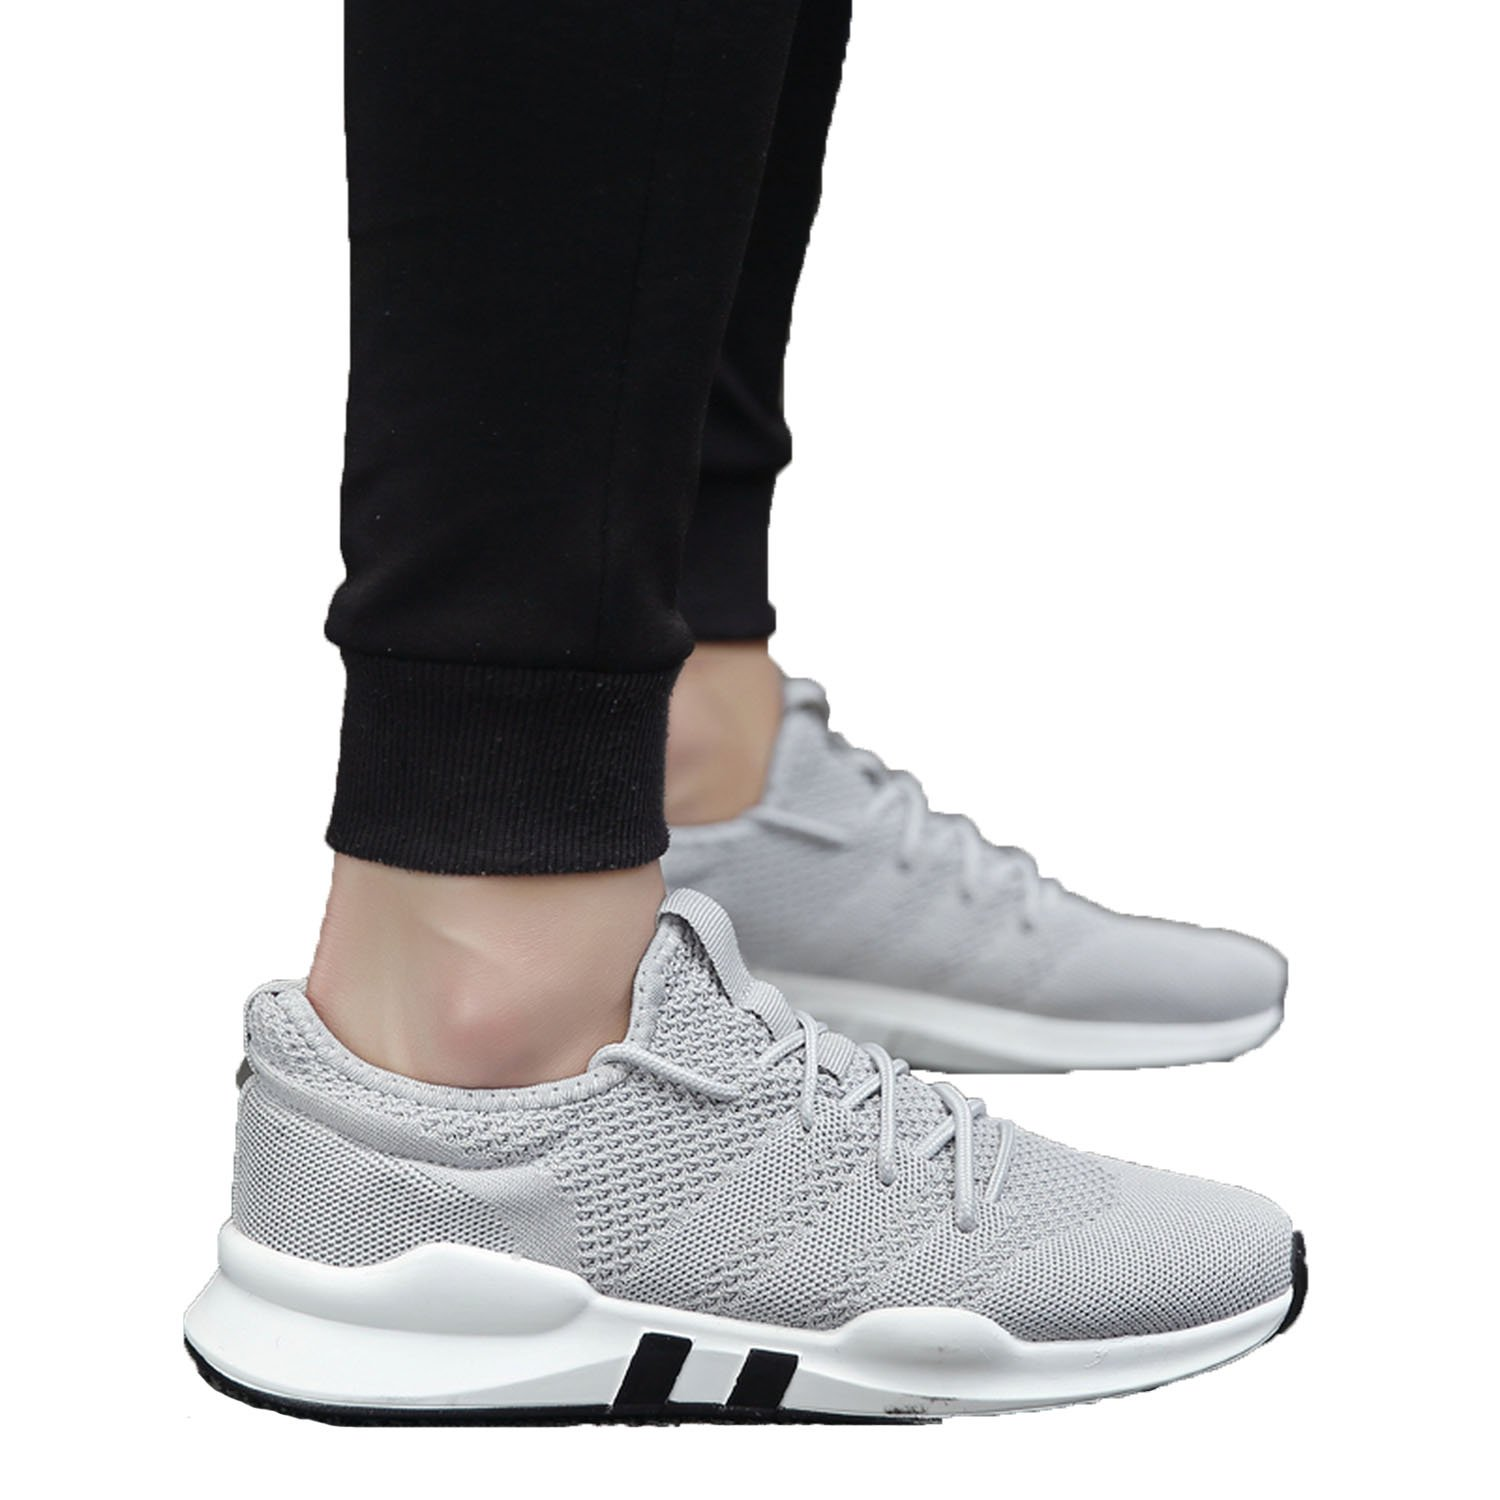 Fashion-Lover Shoes Men 2018 Summer Shoes Trainers Ultra Boosts Zapatillas Deportivas Hombre Breathable Casual Shoes Sapato Masculino Krasovki,Gray,8.5